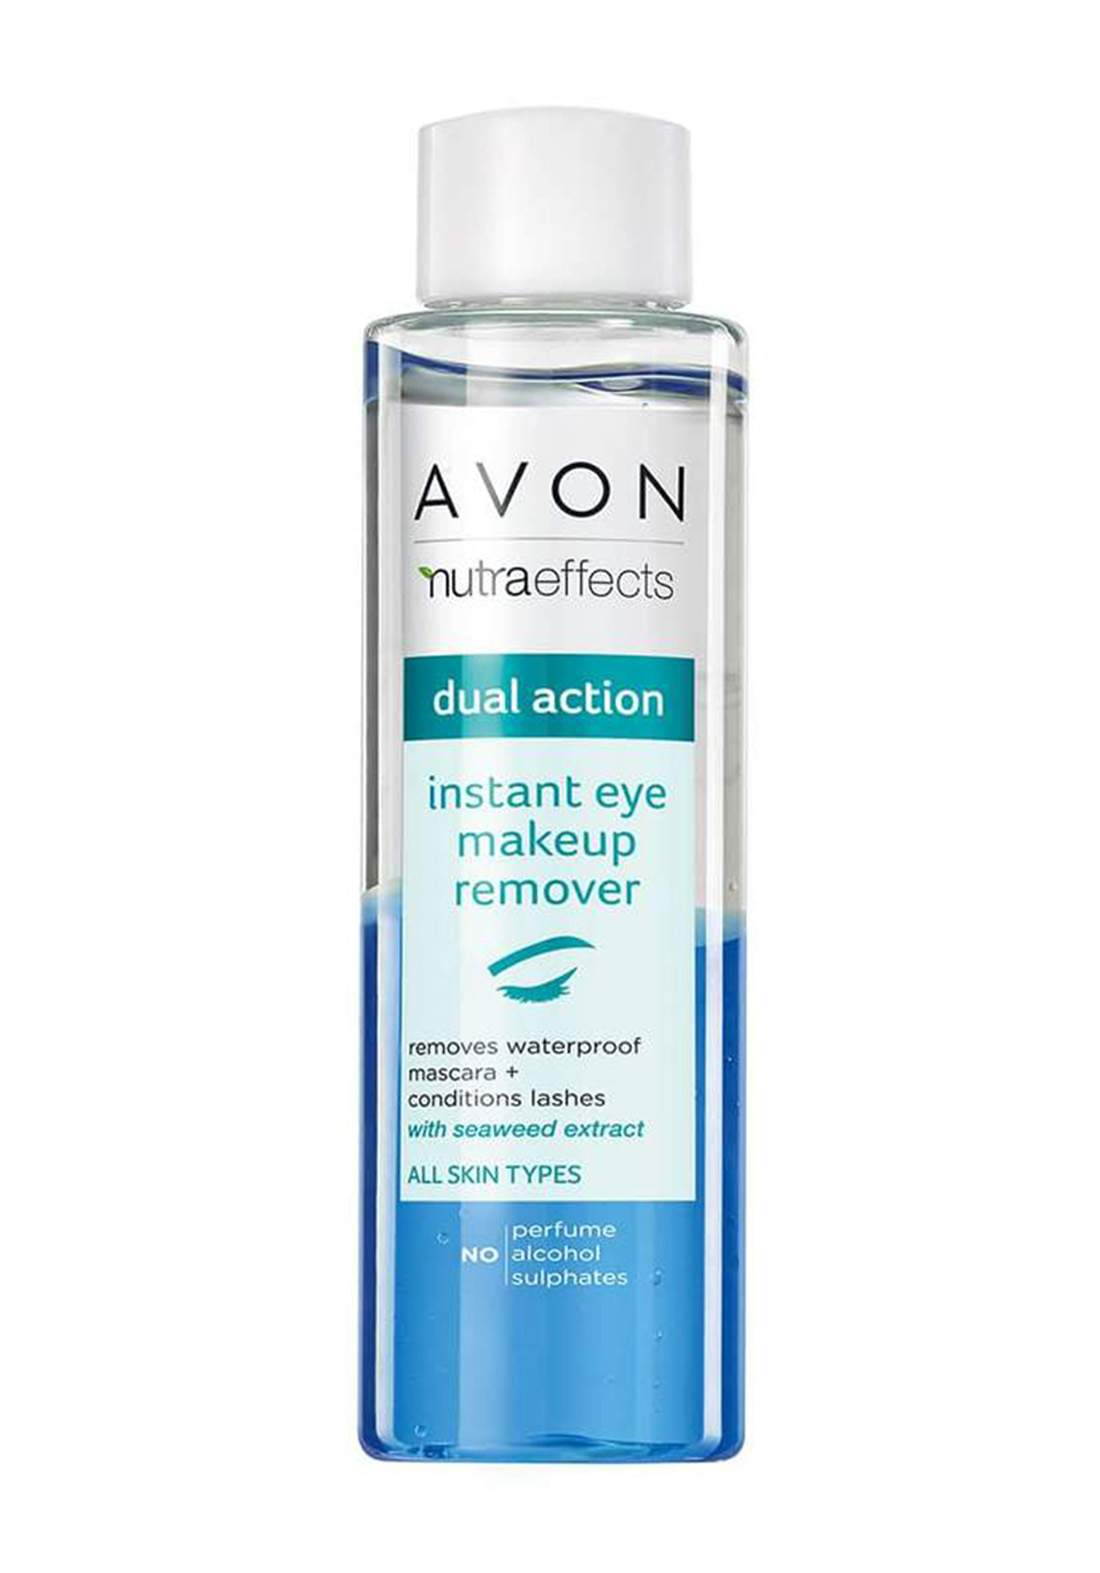 Avon 1332809 Nutra Effects Dual Action Instant Eye Makeup Remover 125ml  مزيل مكياج